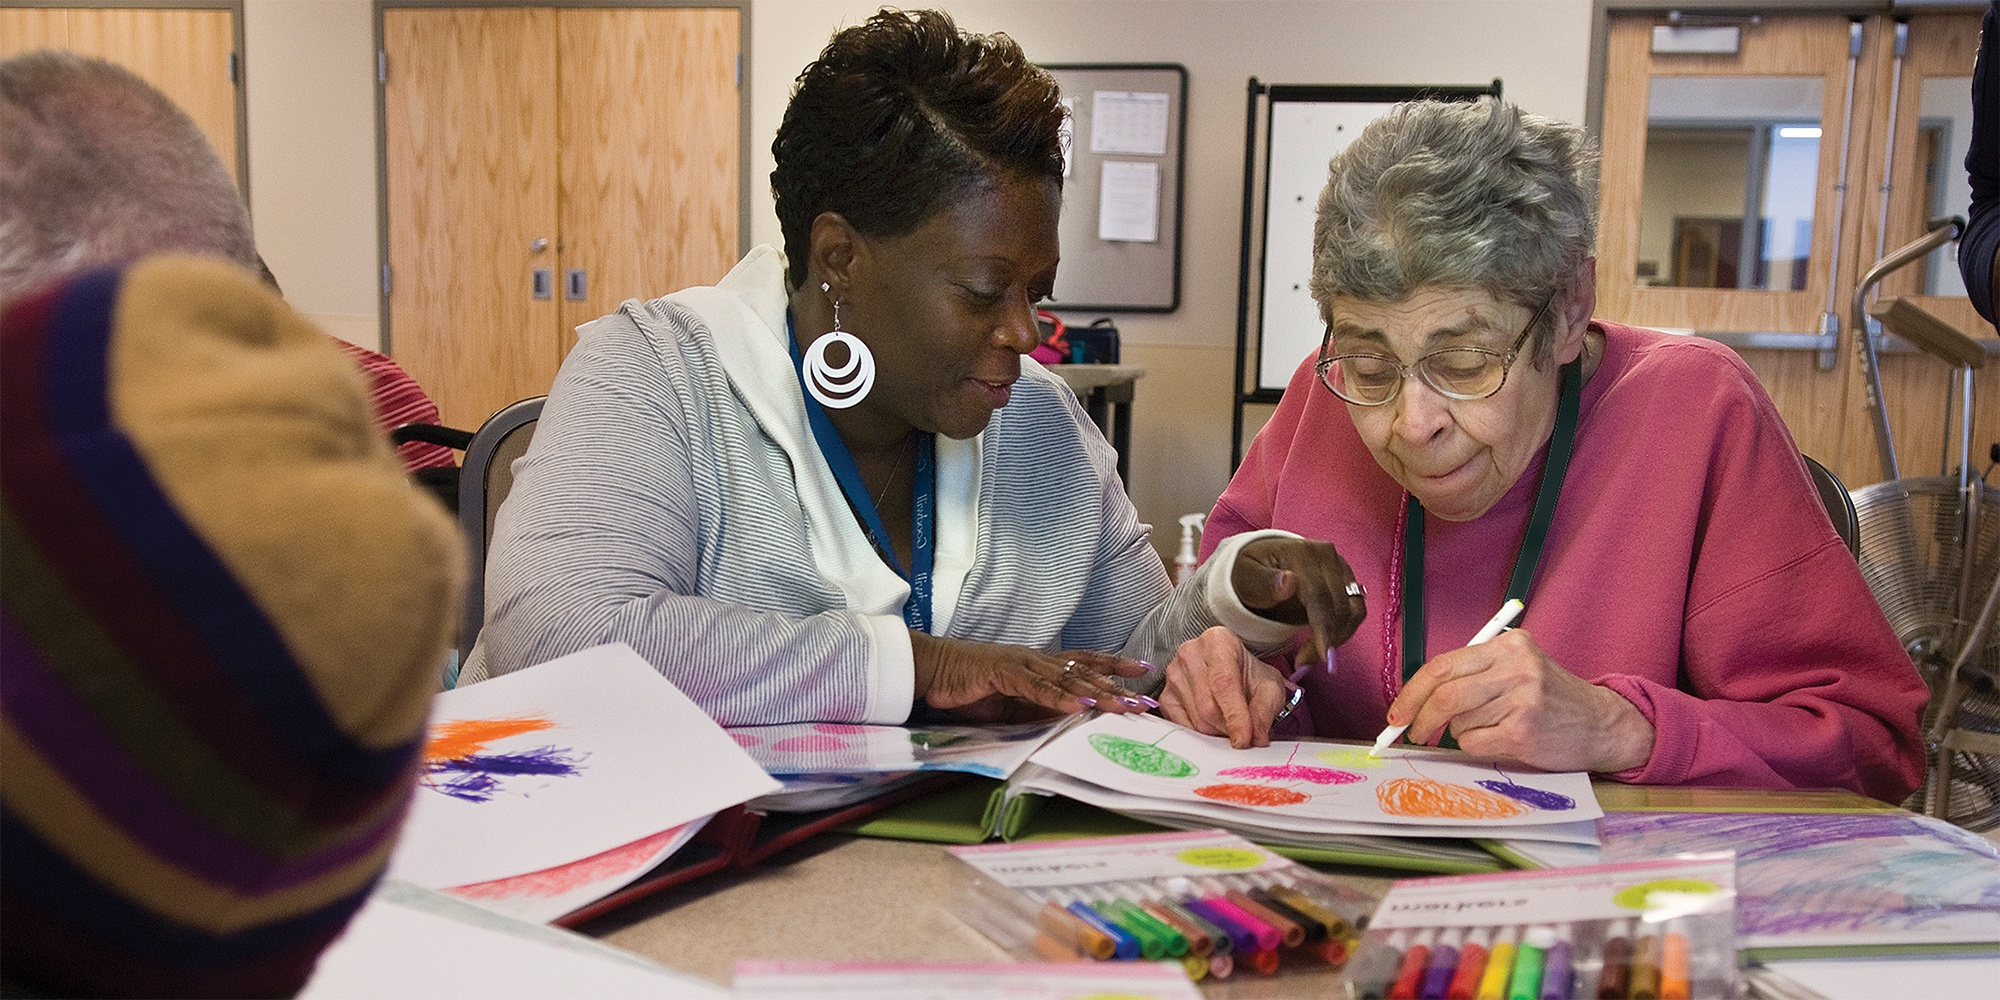 Goodwill Day Service Programs support adults with developmental disabilities to have more independent and active lives